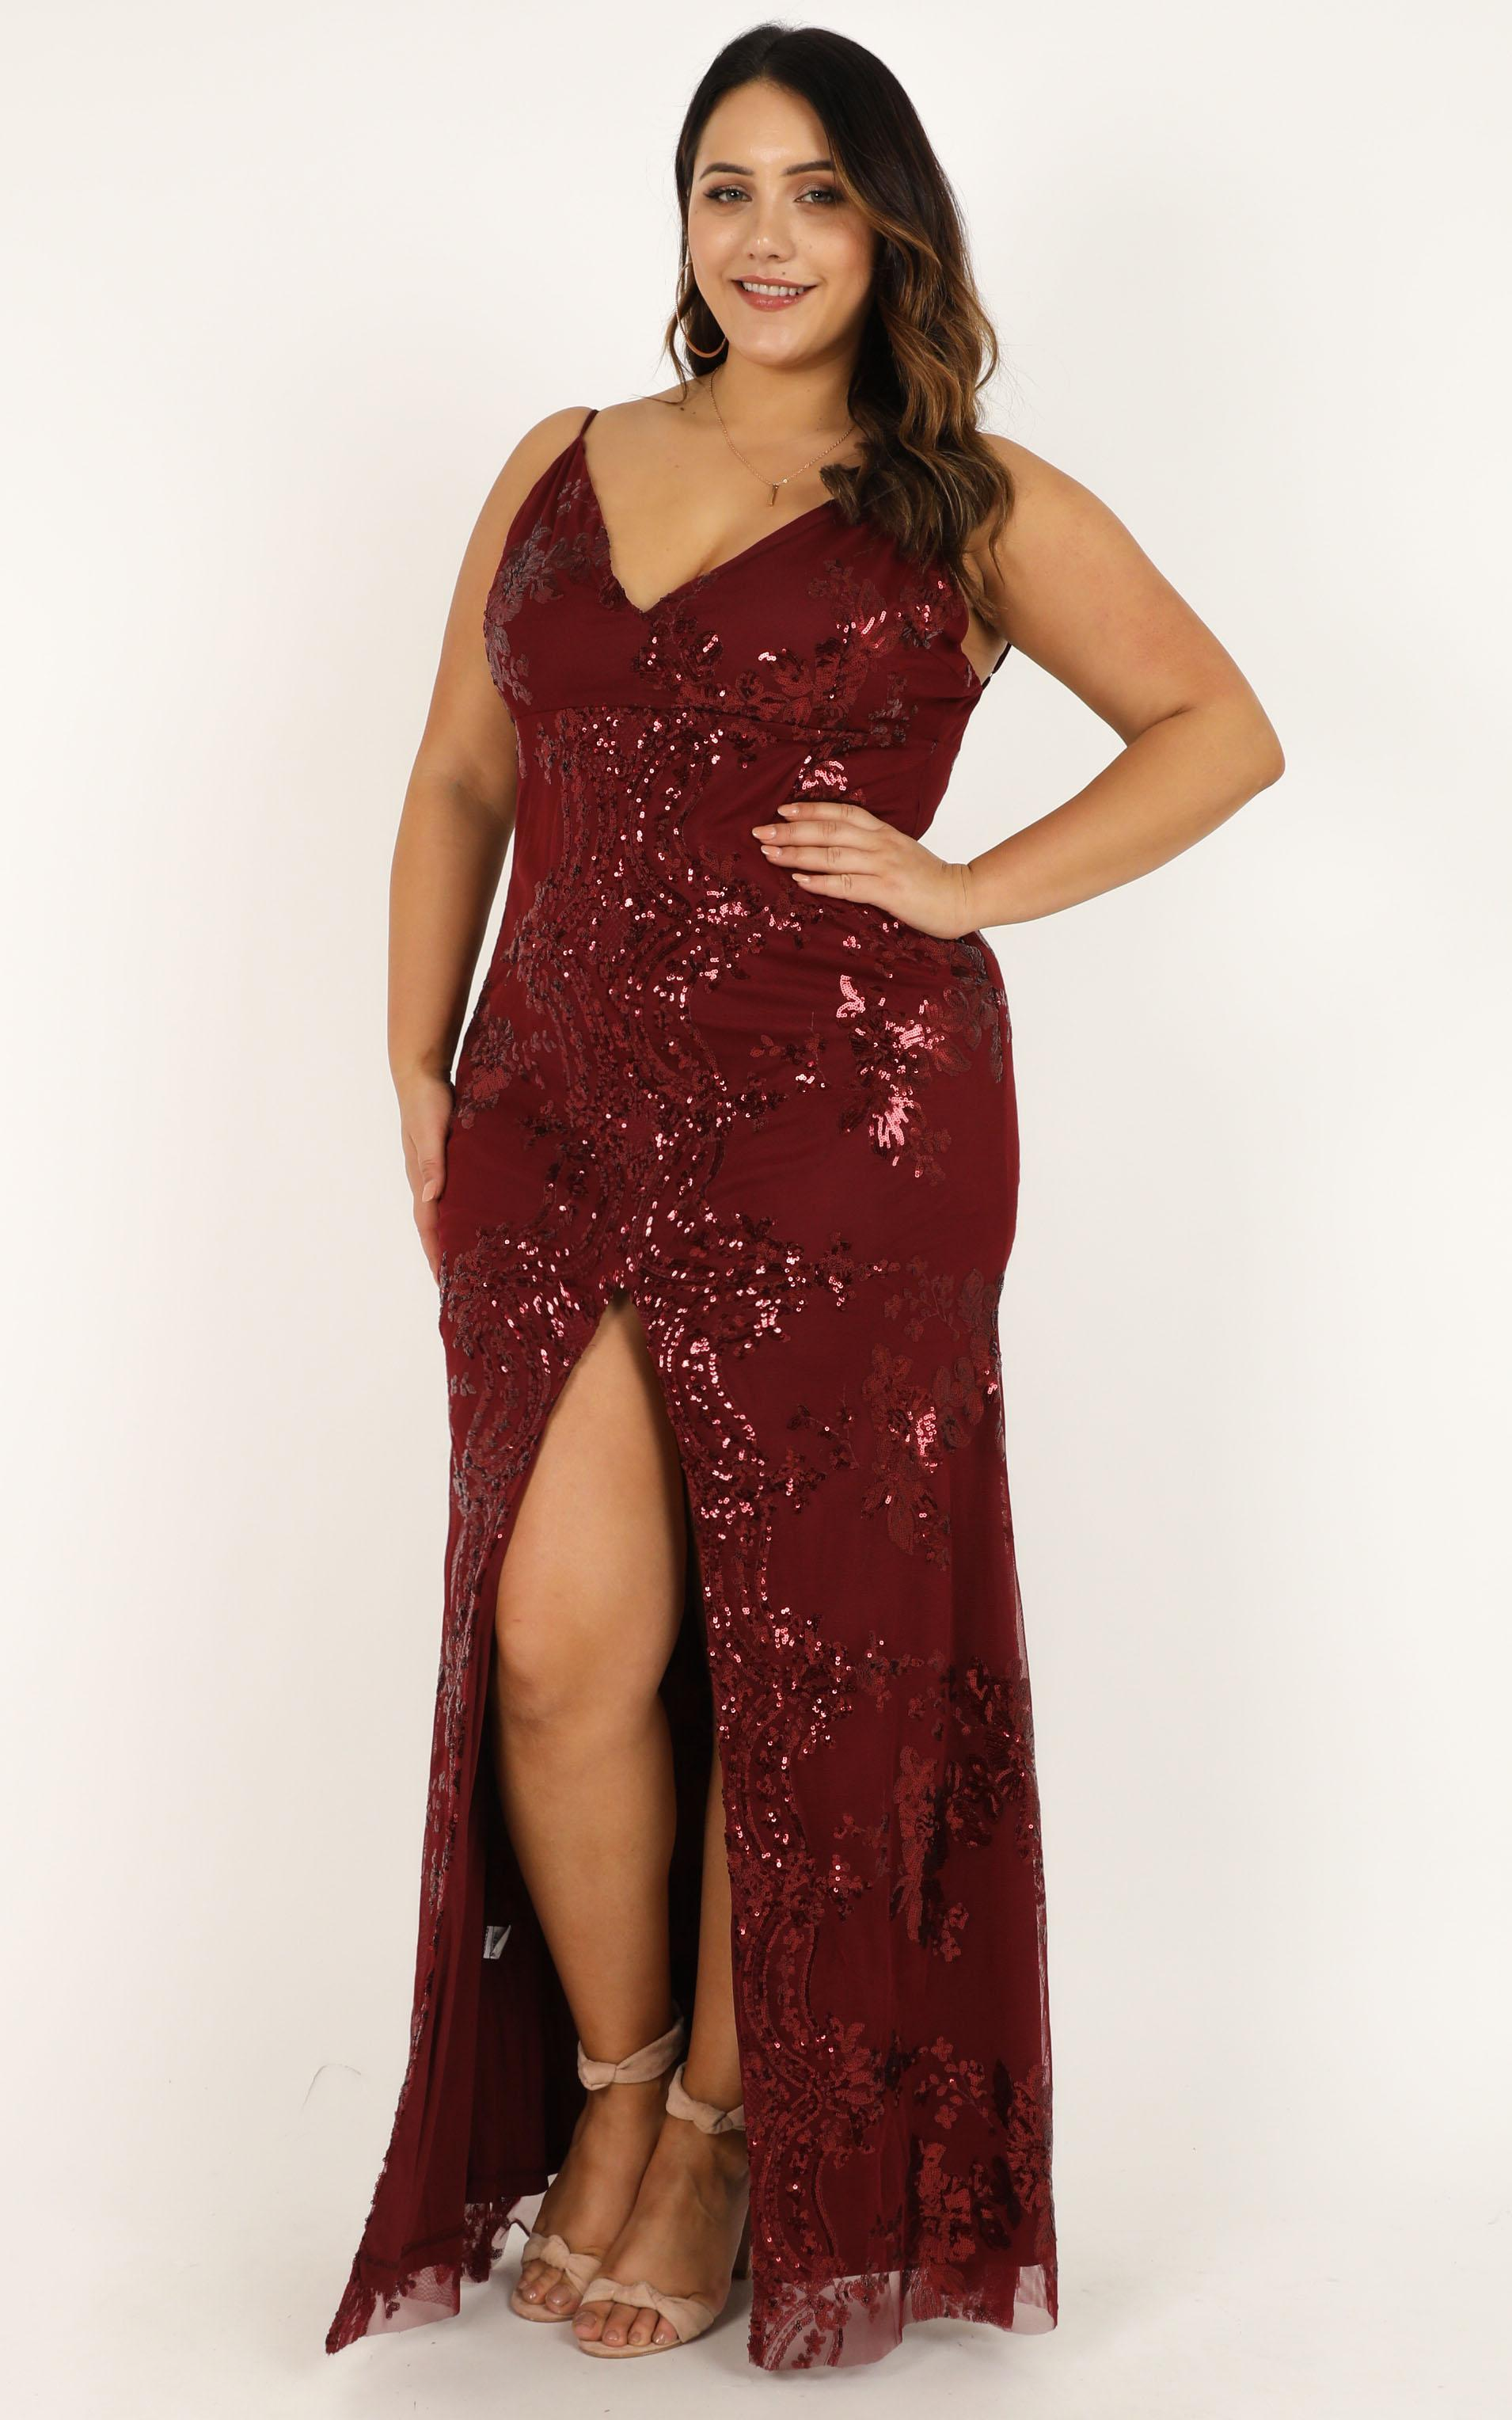 Long Line Of Love Dress in wine sequin - 20 (XXXXL), Wine, hi-res image number null